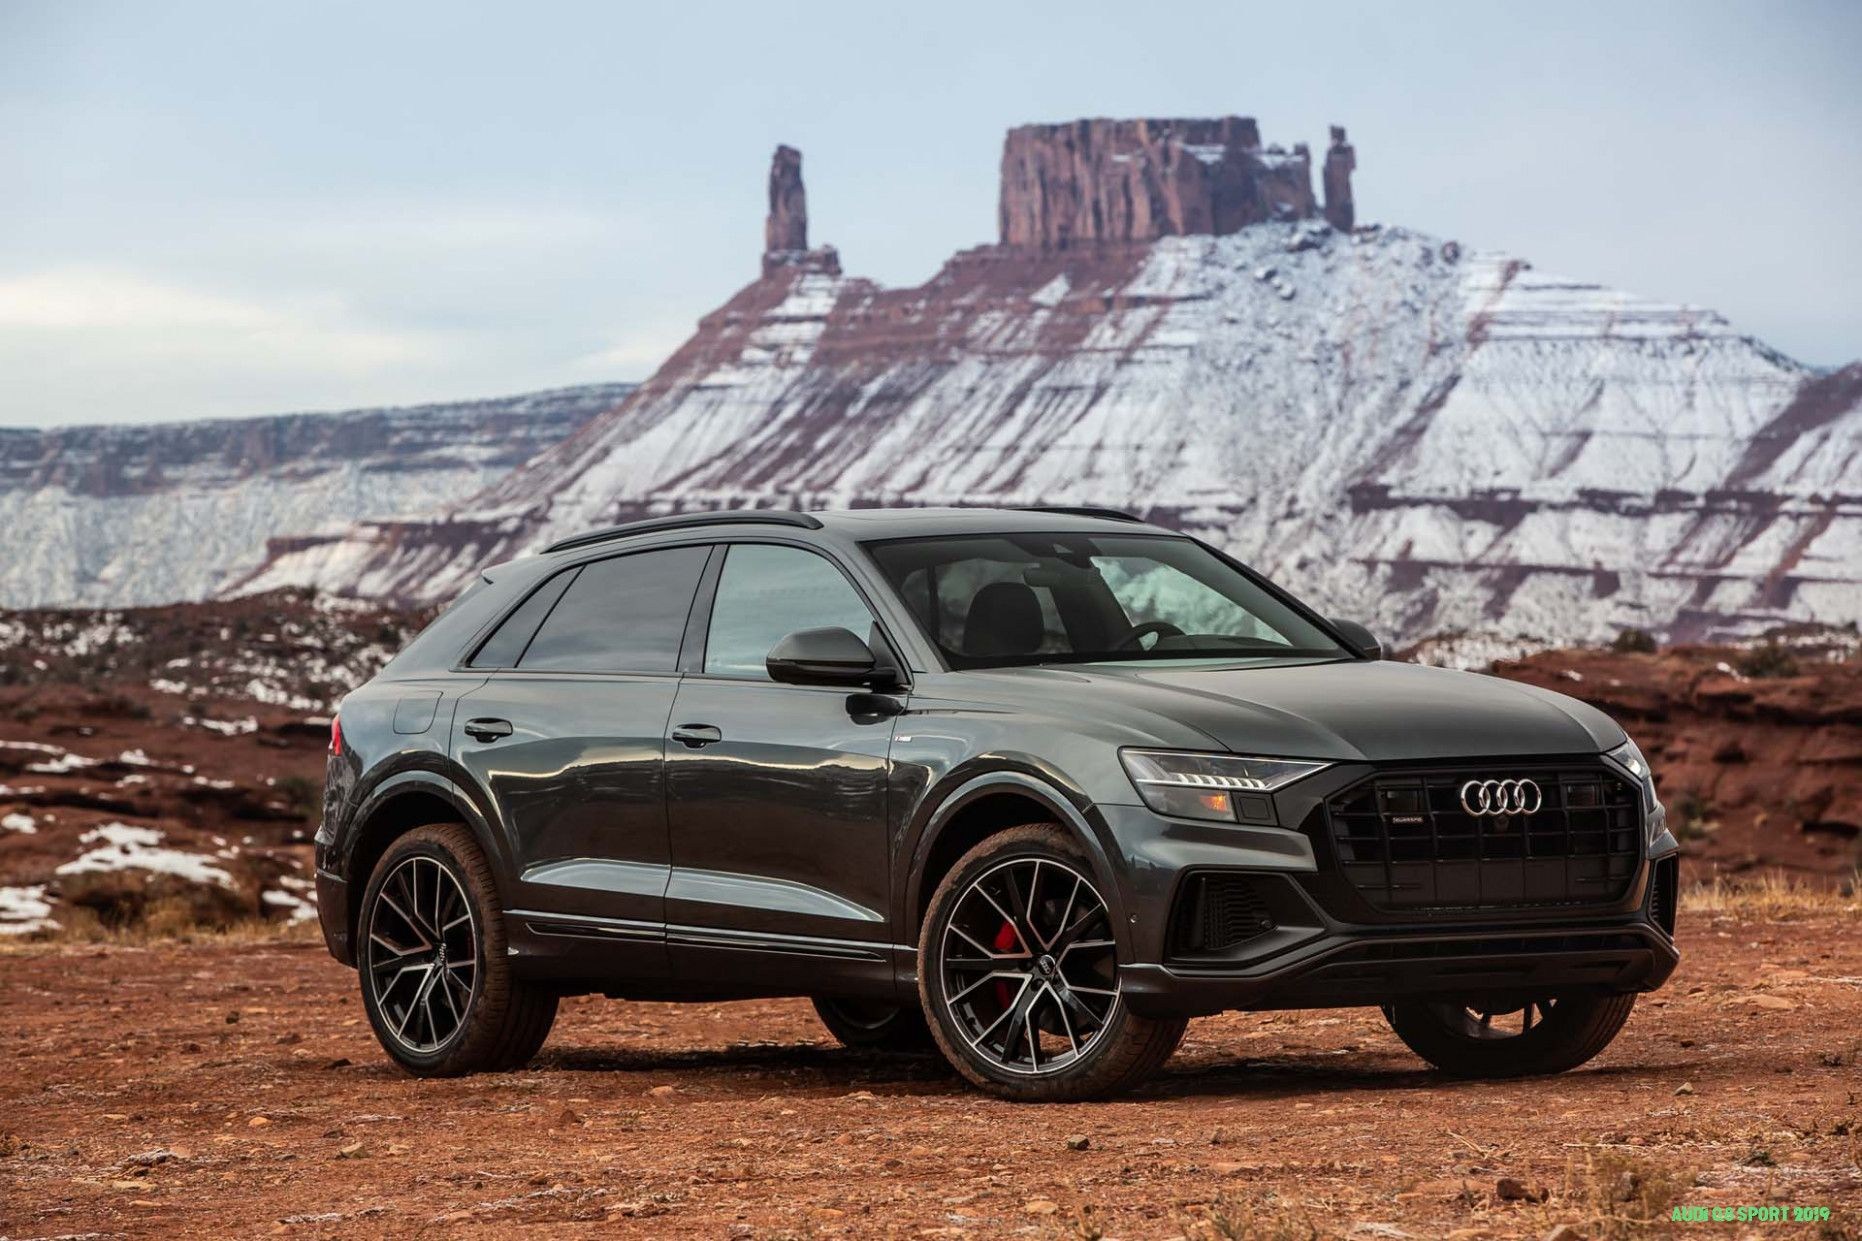 All You Need To Know About Audi Q10 Sport 10 Audi Q10 Sport 10 Https Sportdrawing Com All You Need To Know About Audi Q10 Spo Luxury Suv Audi Best Suv Cars